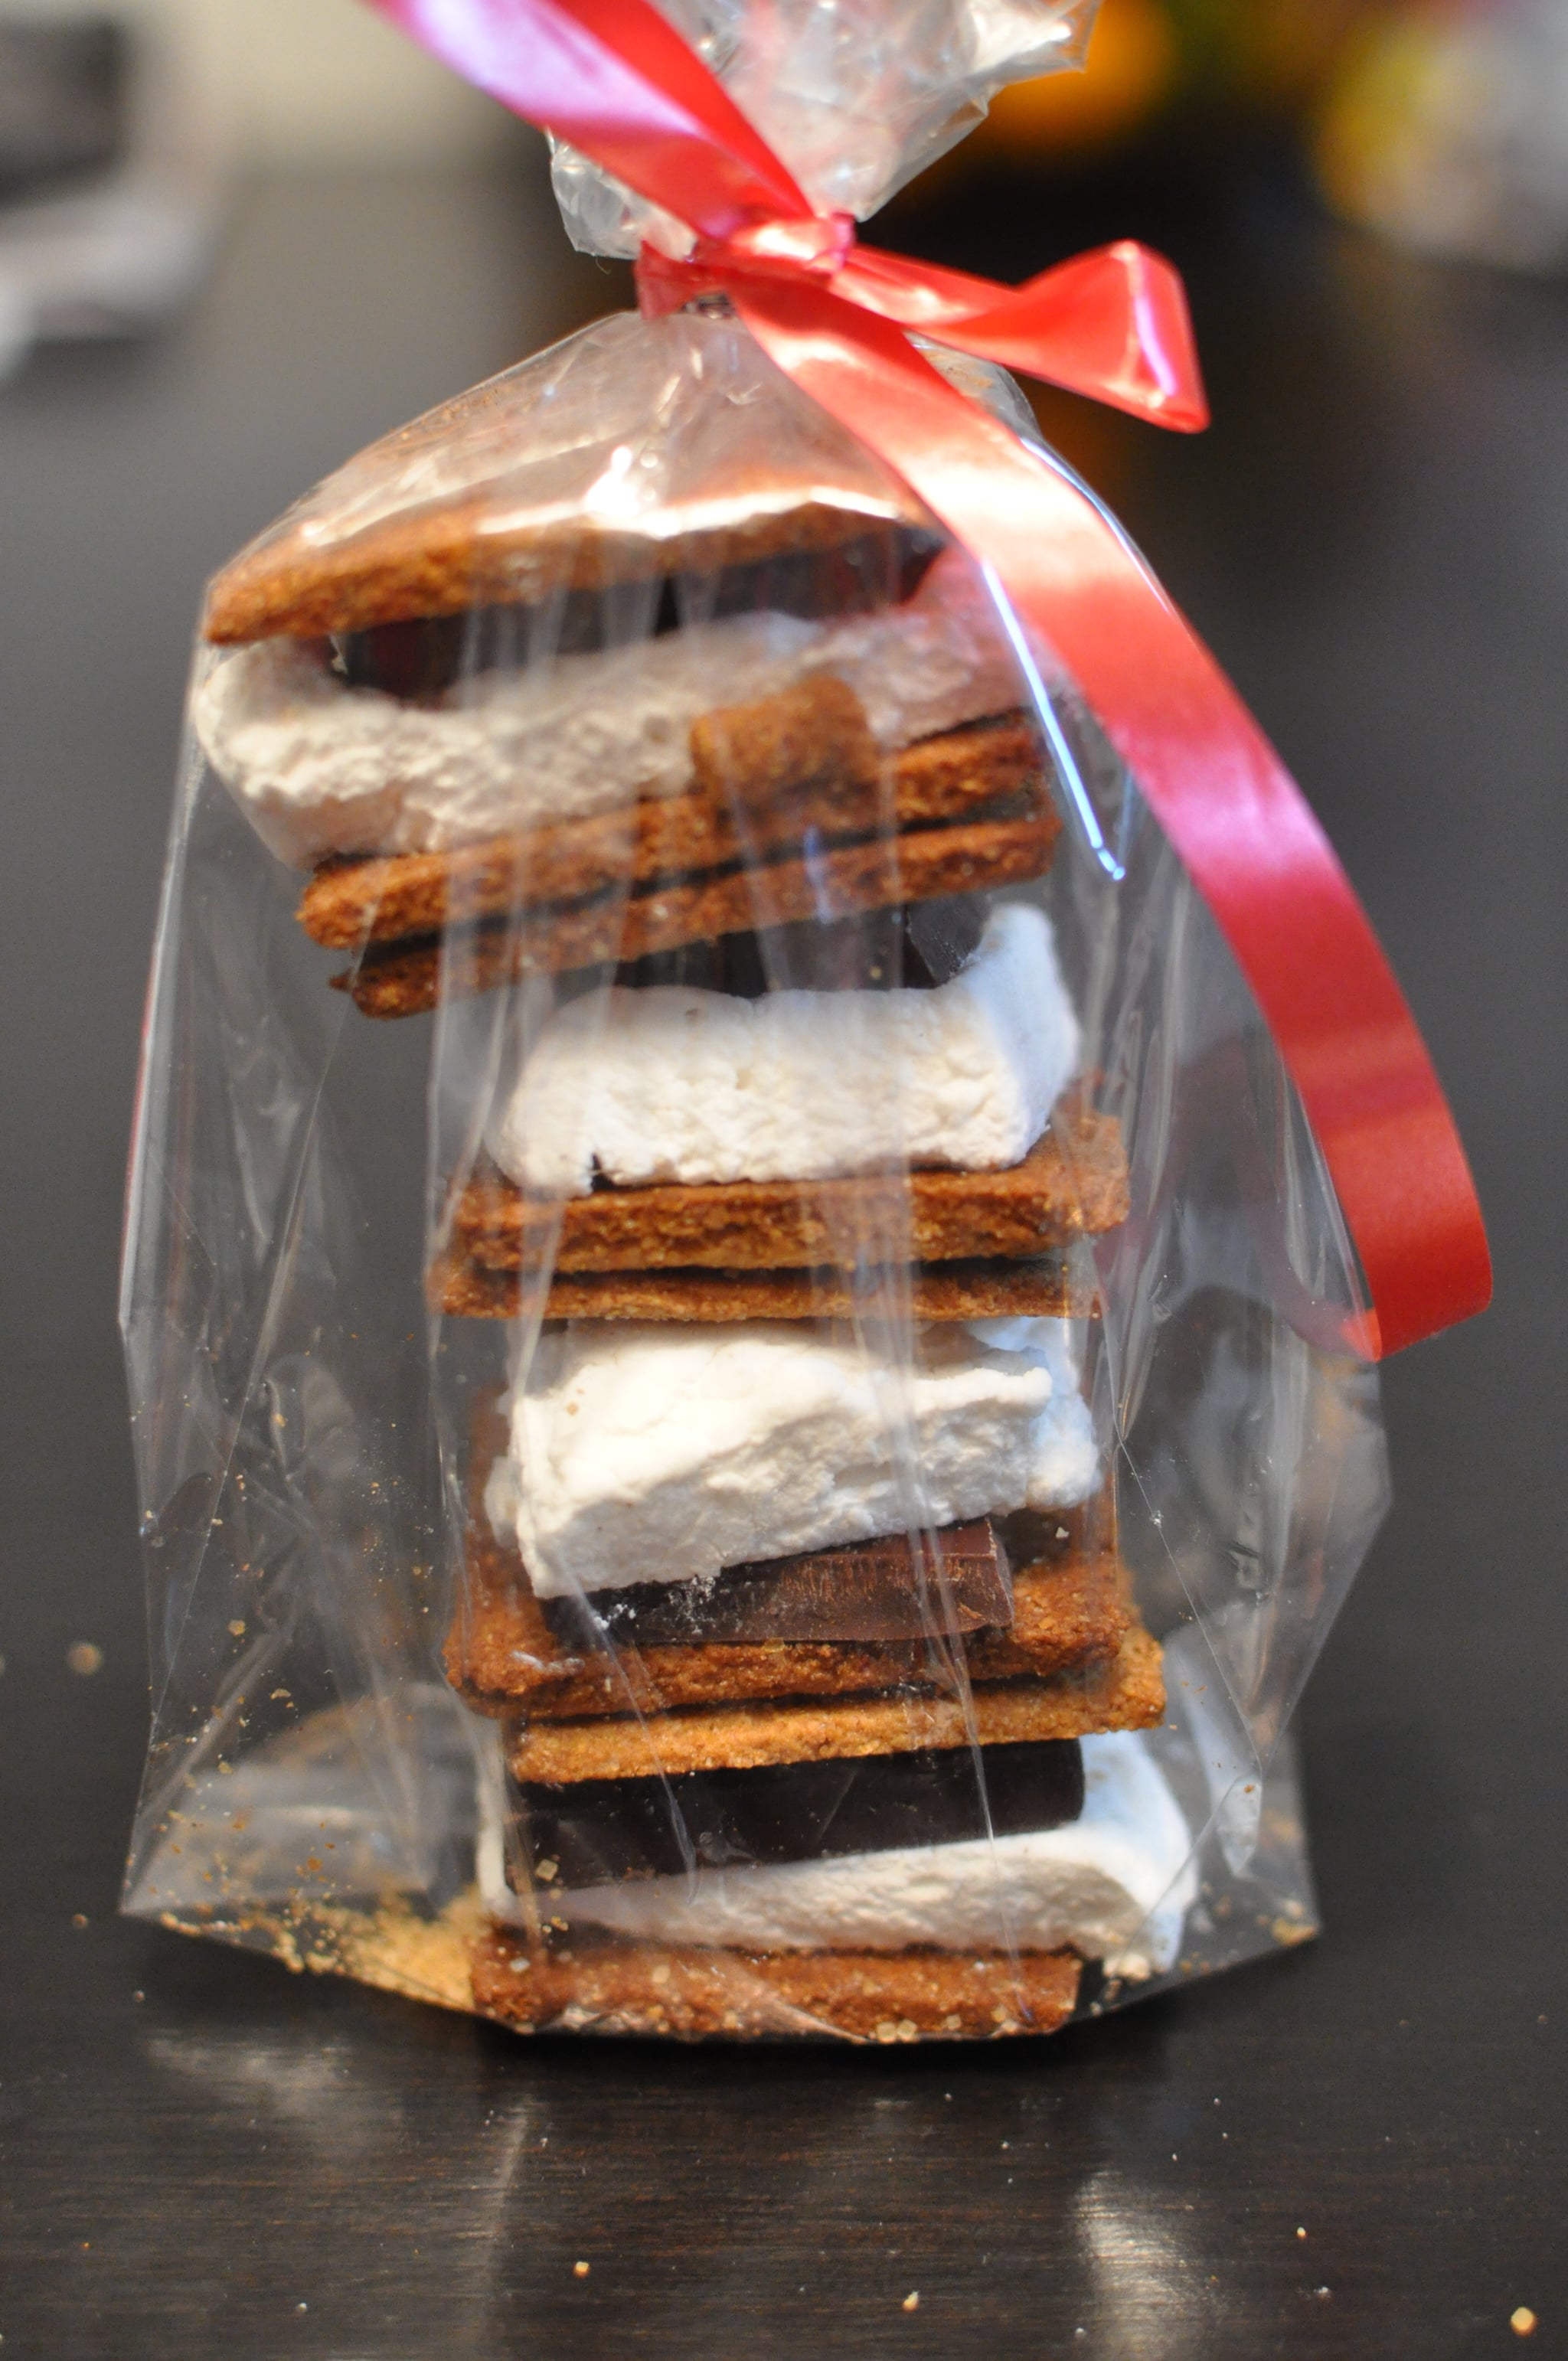 12 Days of Edible Gifts: Homemade S'Mores